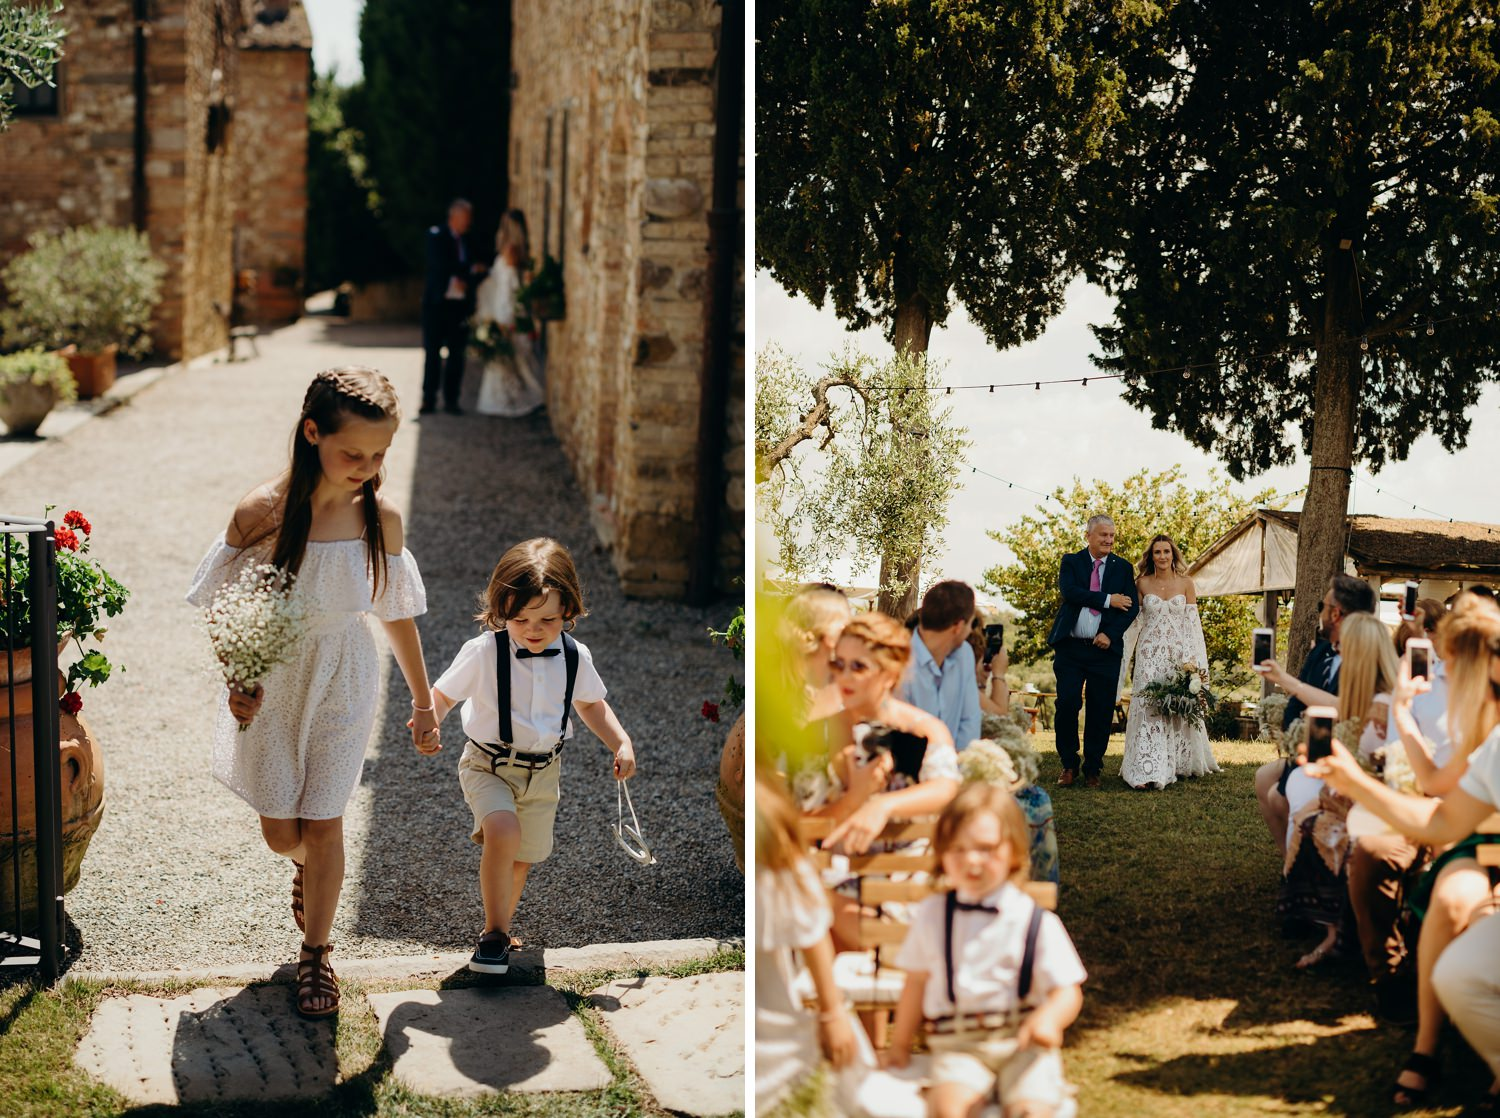 flower girl and page boy arrive to ceremony